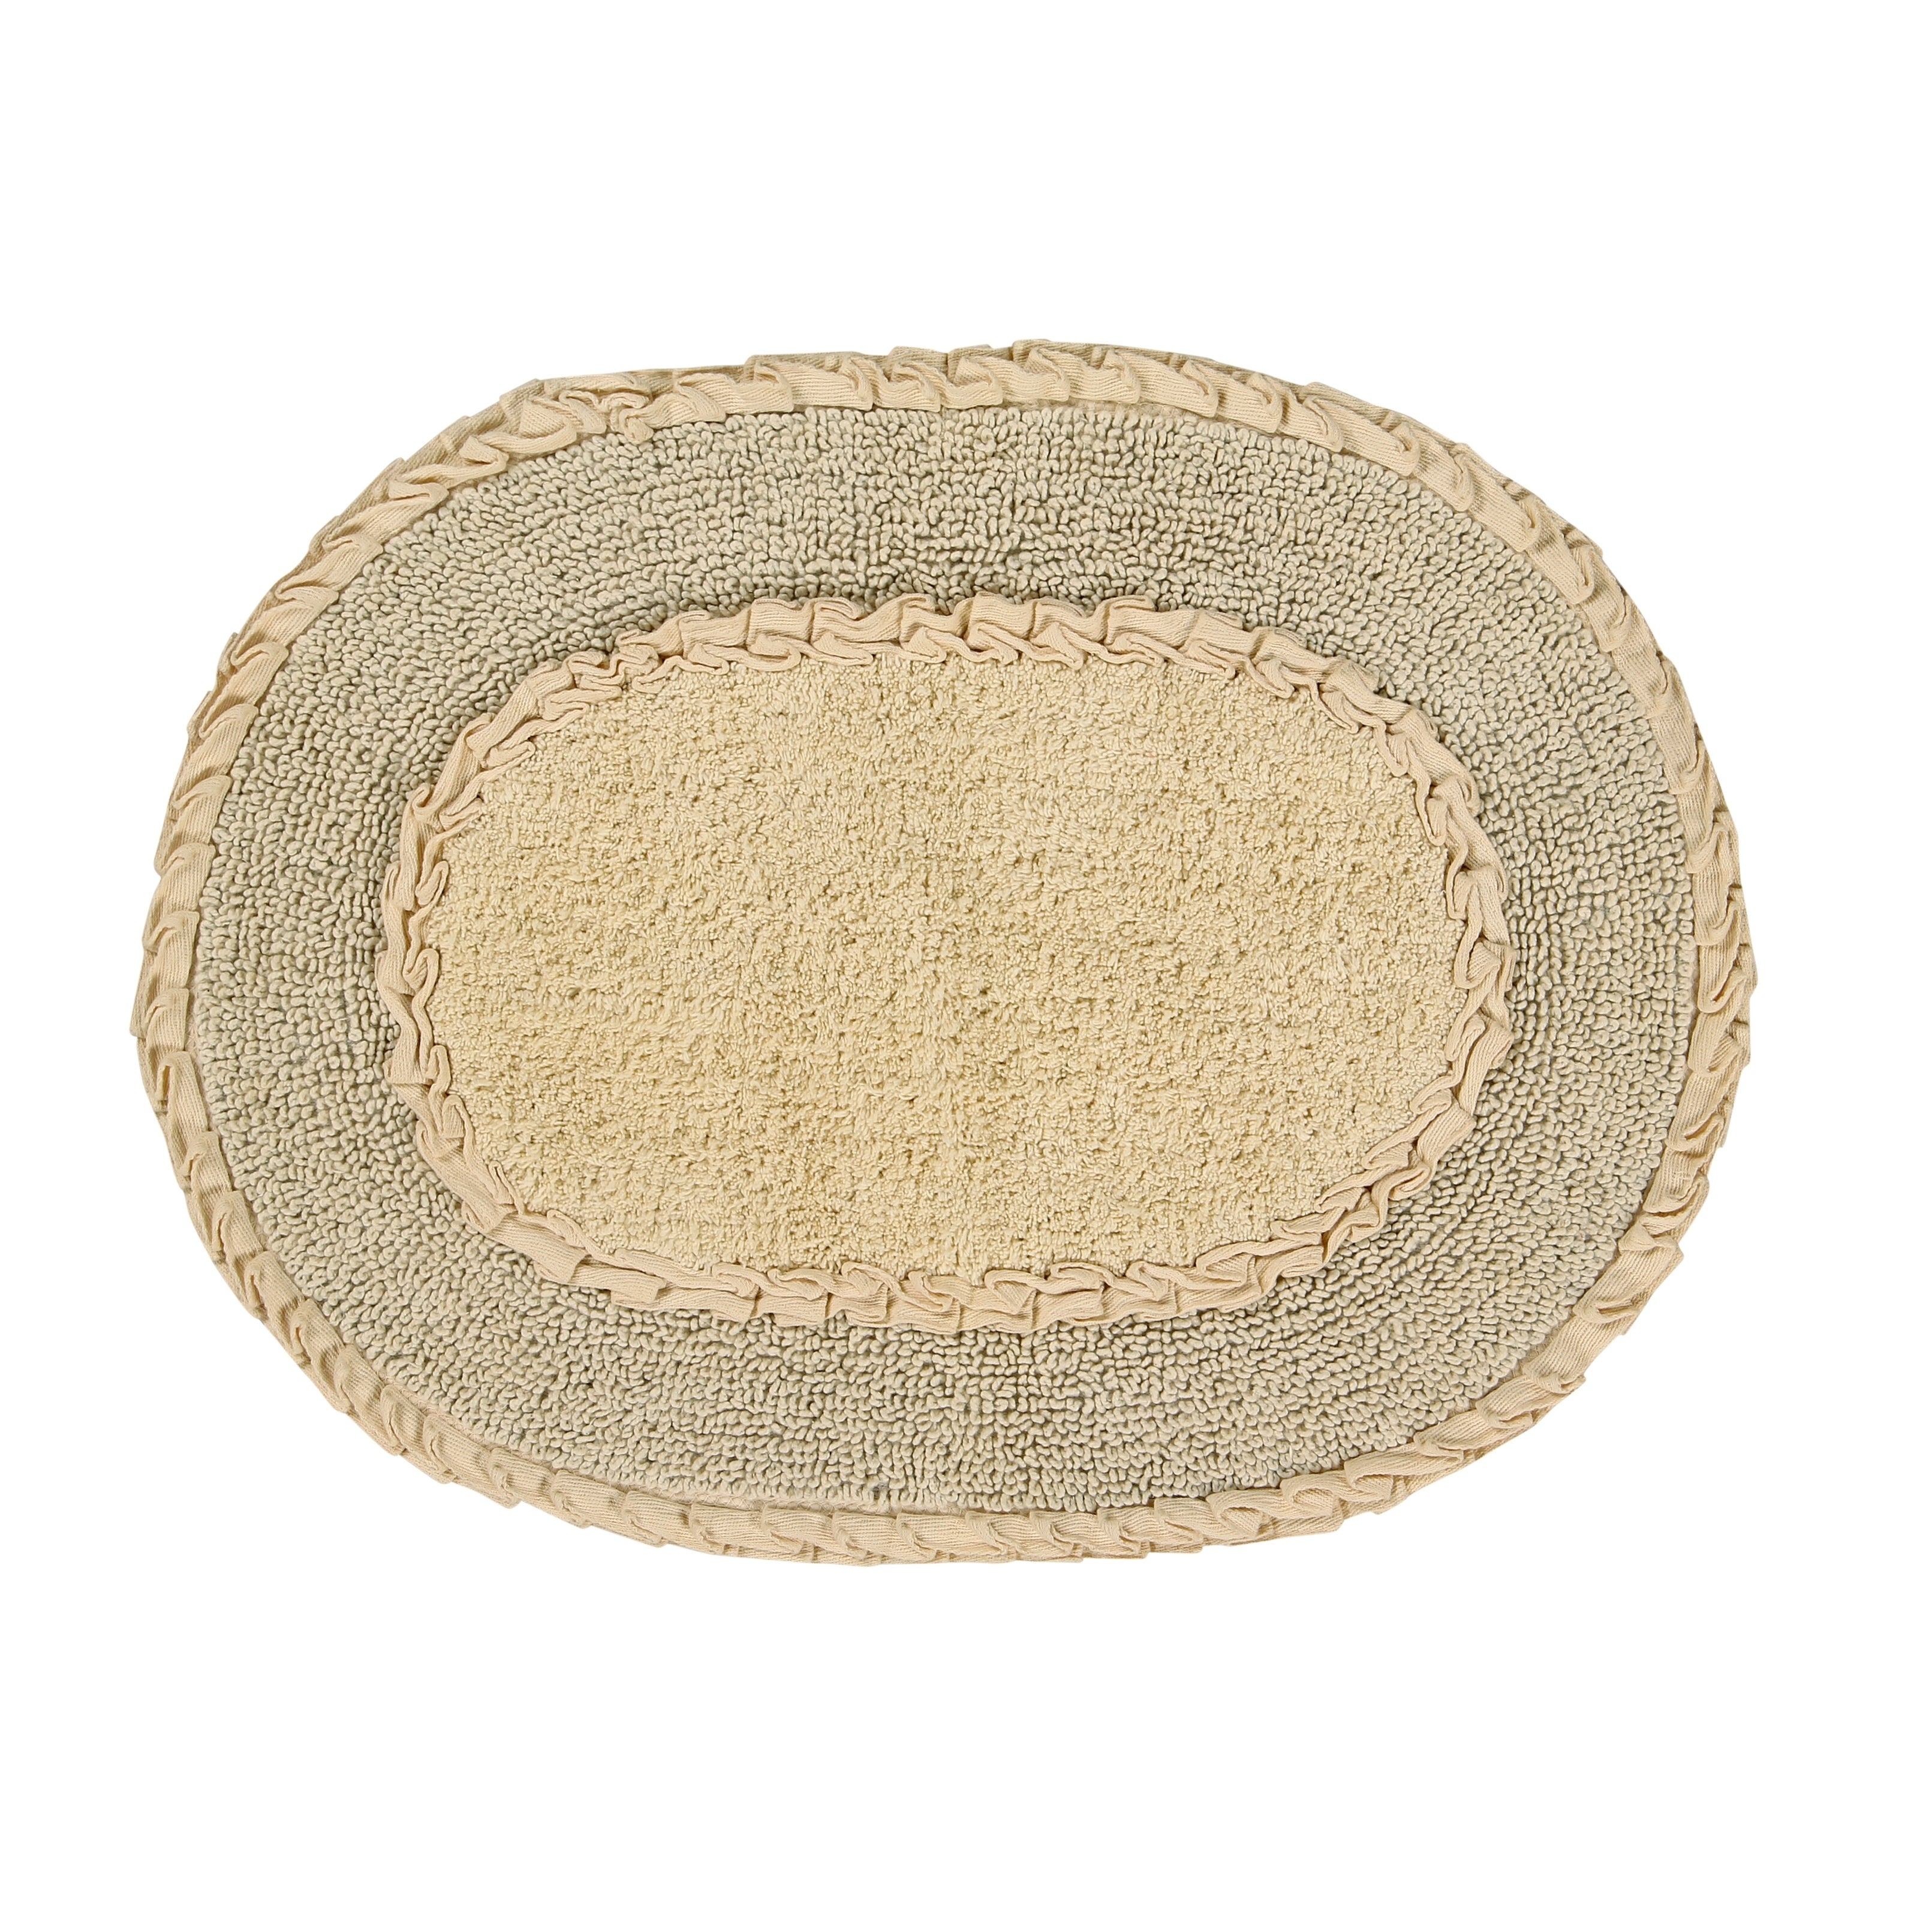 Bathroom Rugs That Absorb Water.Shop Double Ruffle 17 X24 Butter Bath Rug Free Shipping On Orders